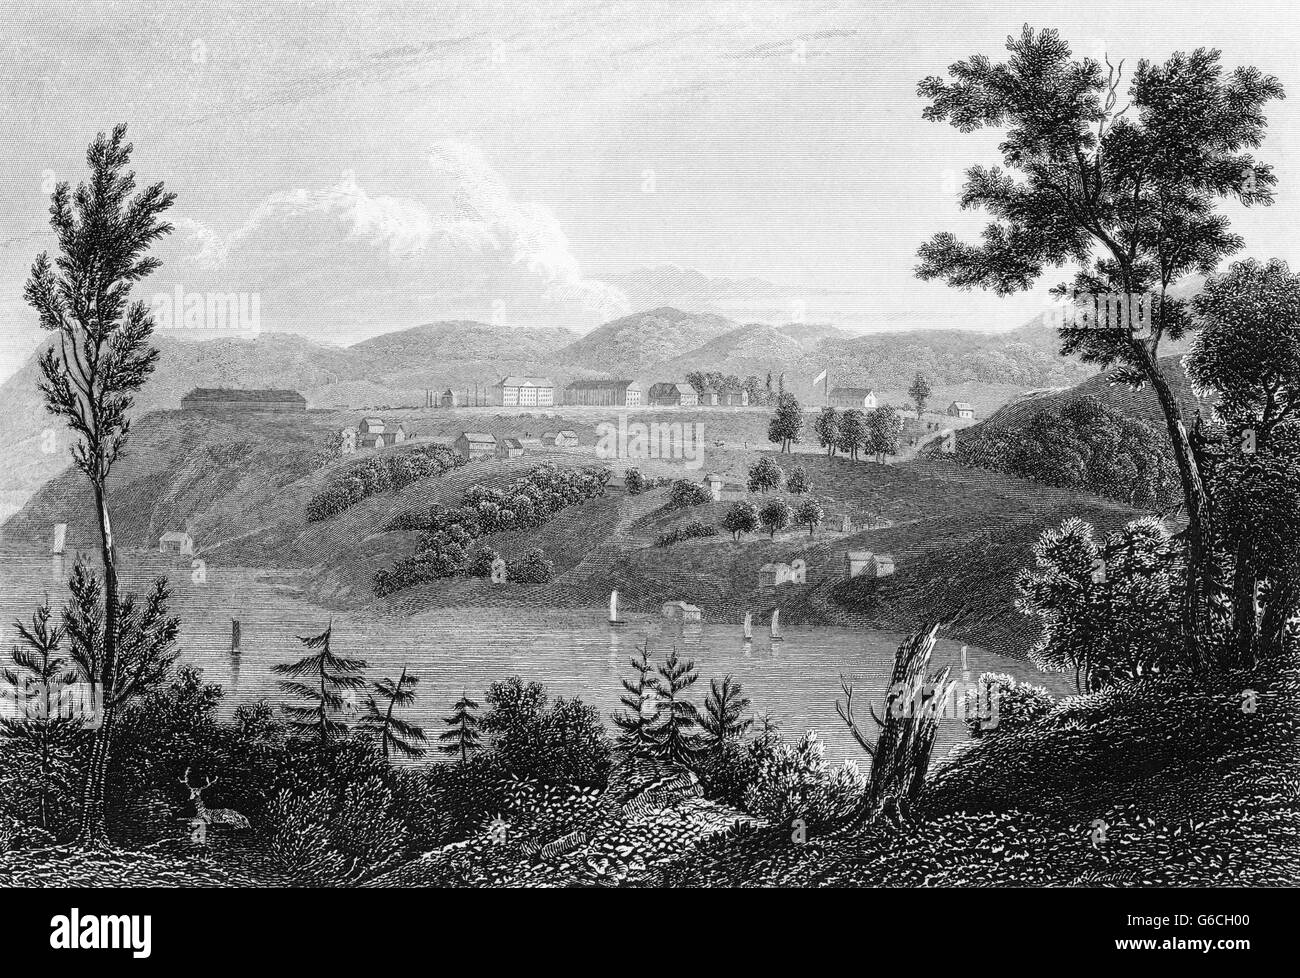 1830s 1834 ENGRAVING OF WEST POINT MILITARY COLLEGE NEW YORK ON HUDSON RIVER - Stock Image